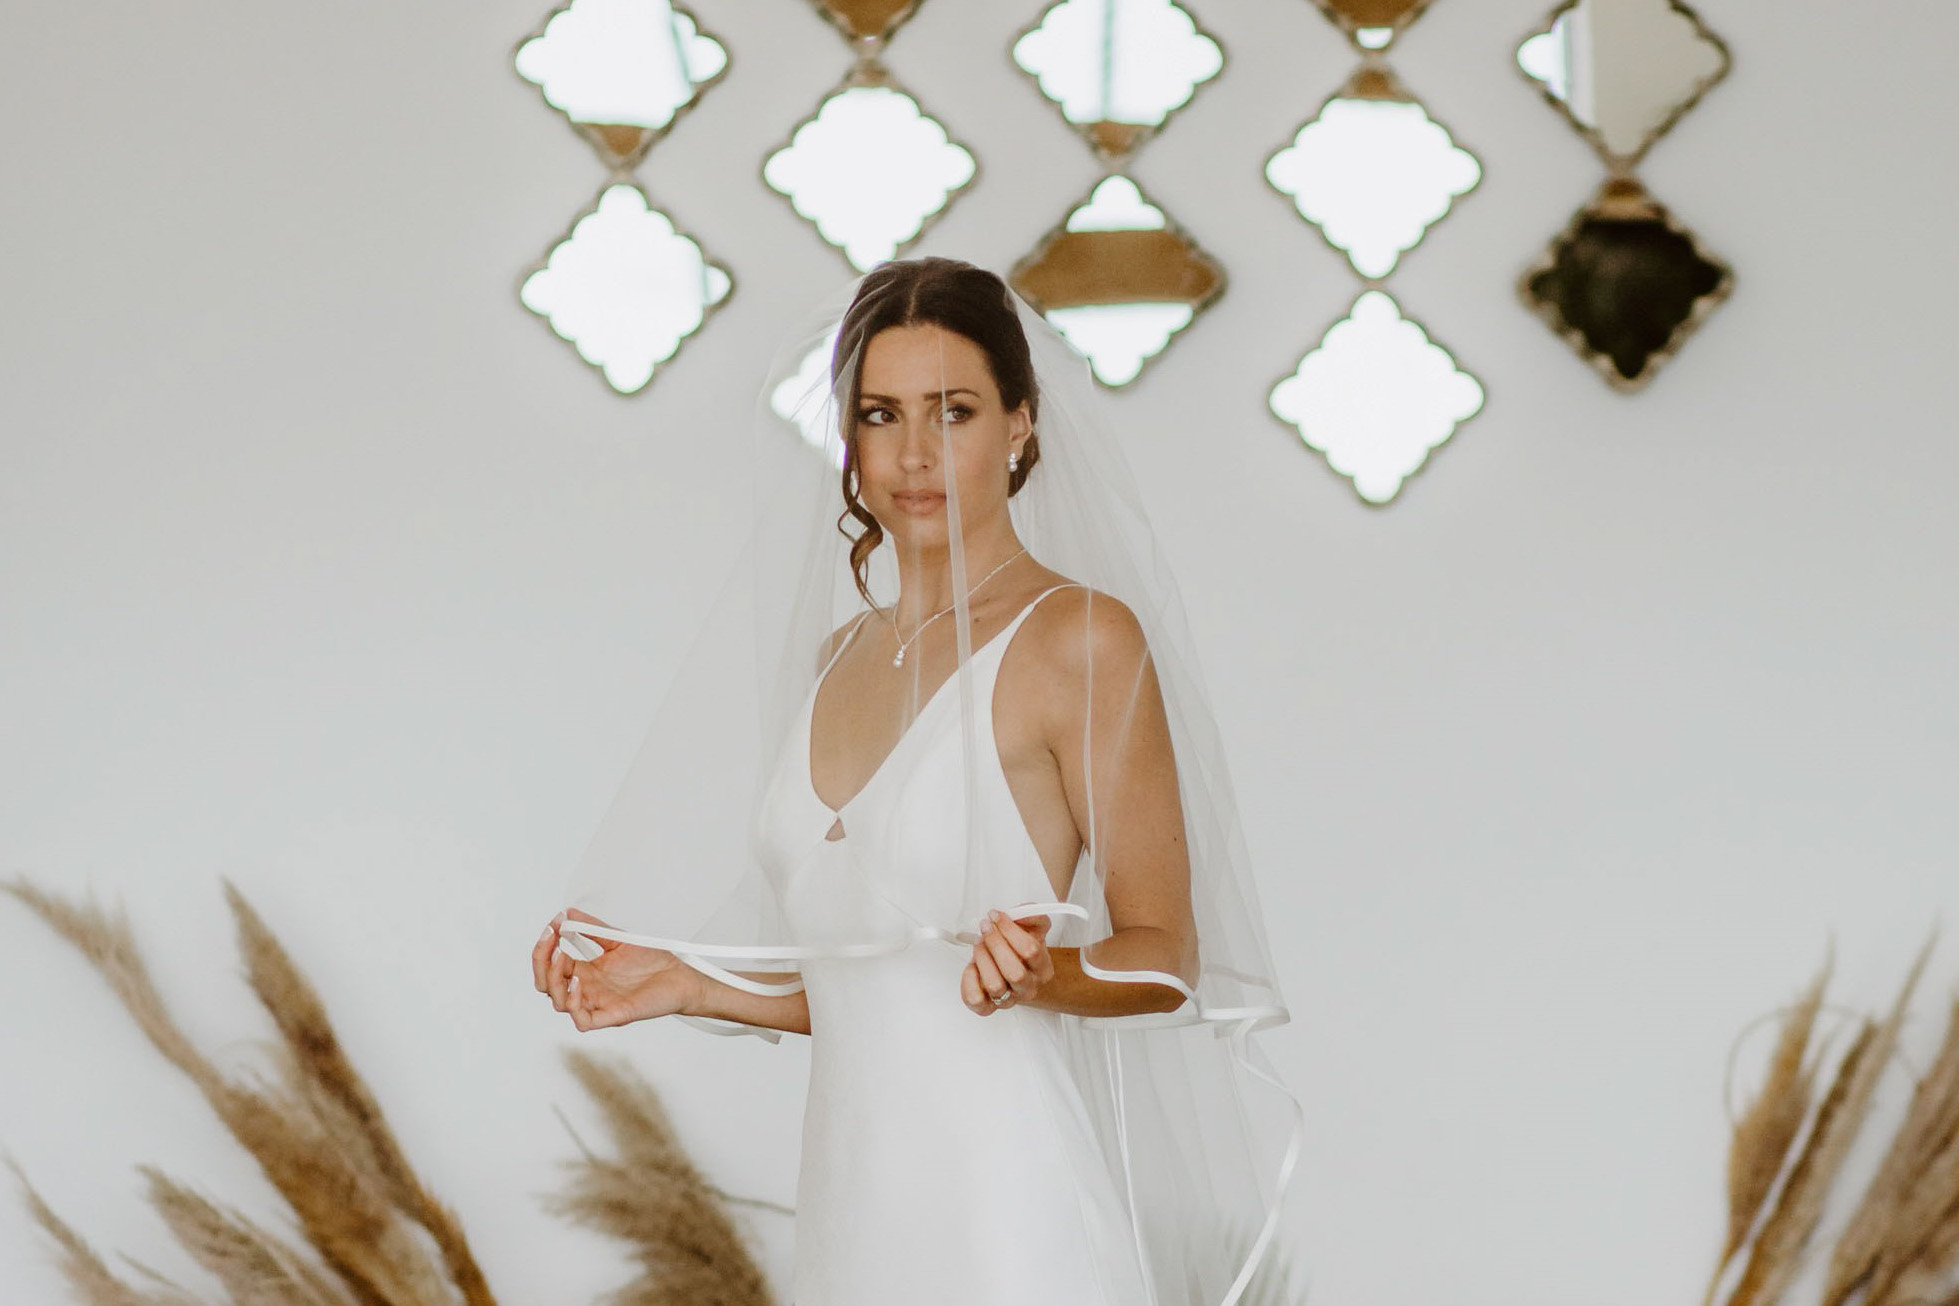 9 Beautiful Wedding Veil Styles You Should Know About